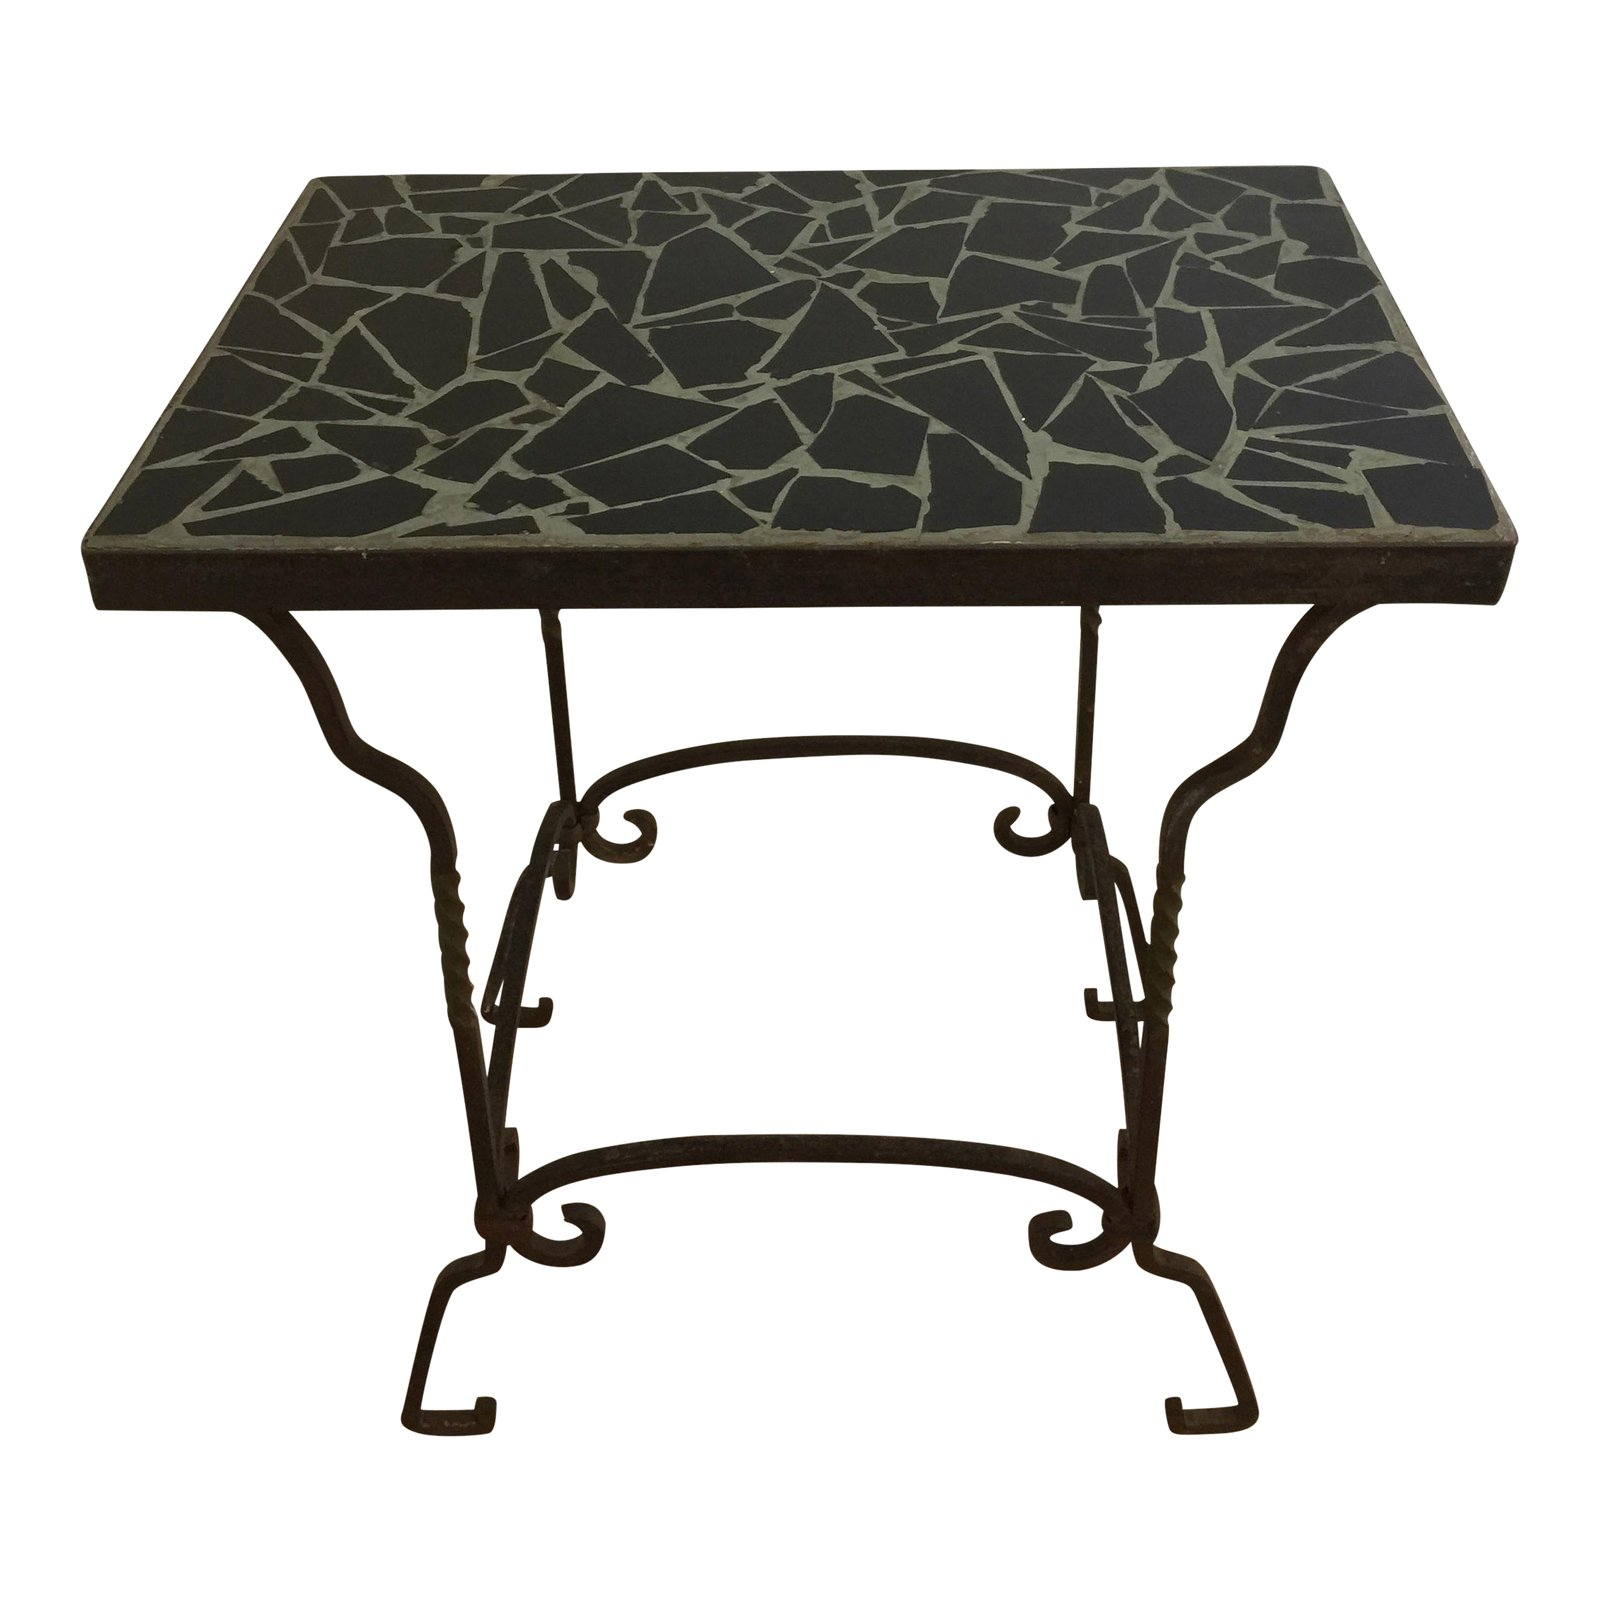 black cracked mosaic tile top iron side table chairish outdoor accent west elm marble console dresser drawer pulls metal drum storage tall bistro laminate flooring doorway